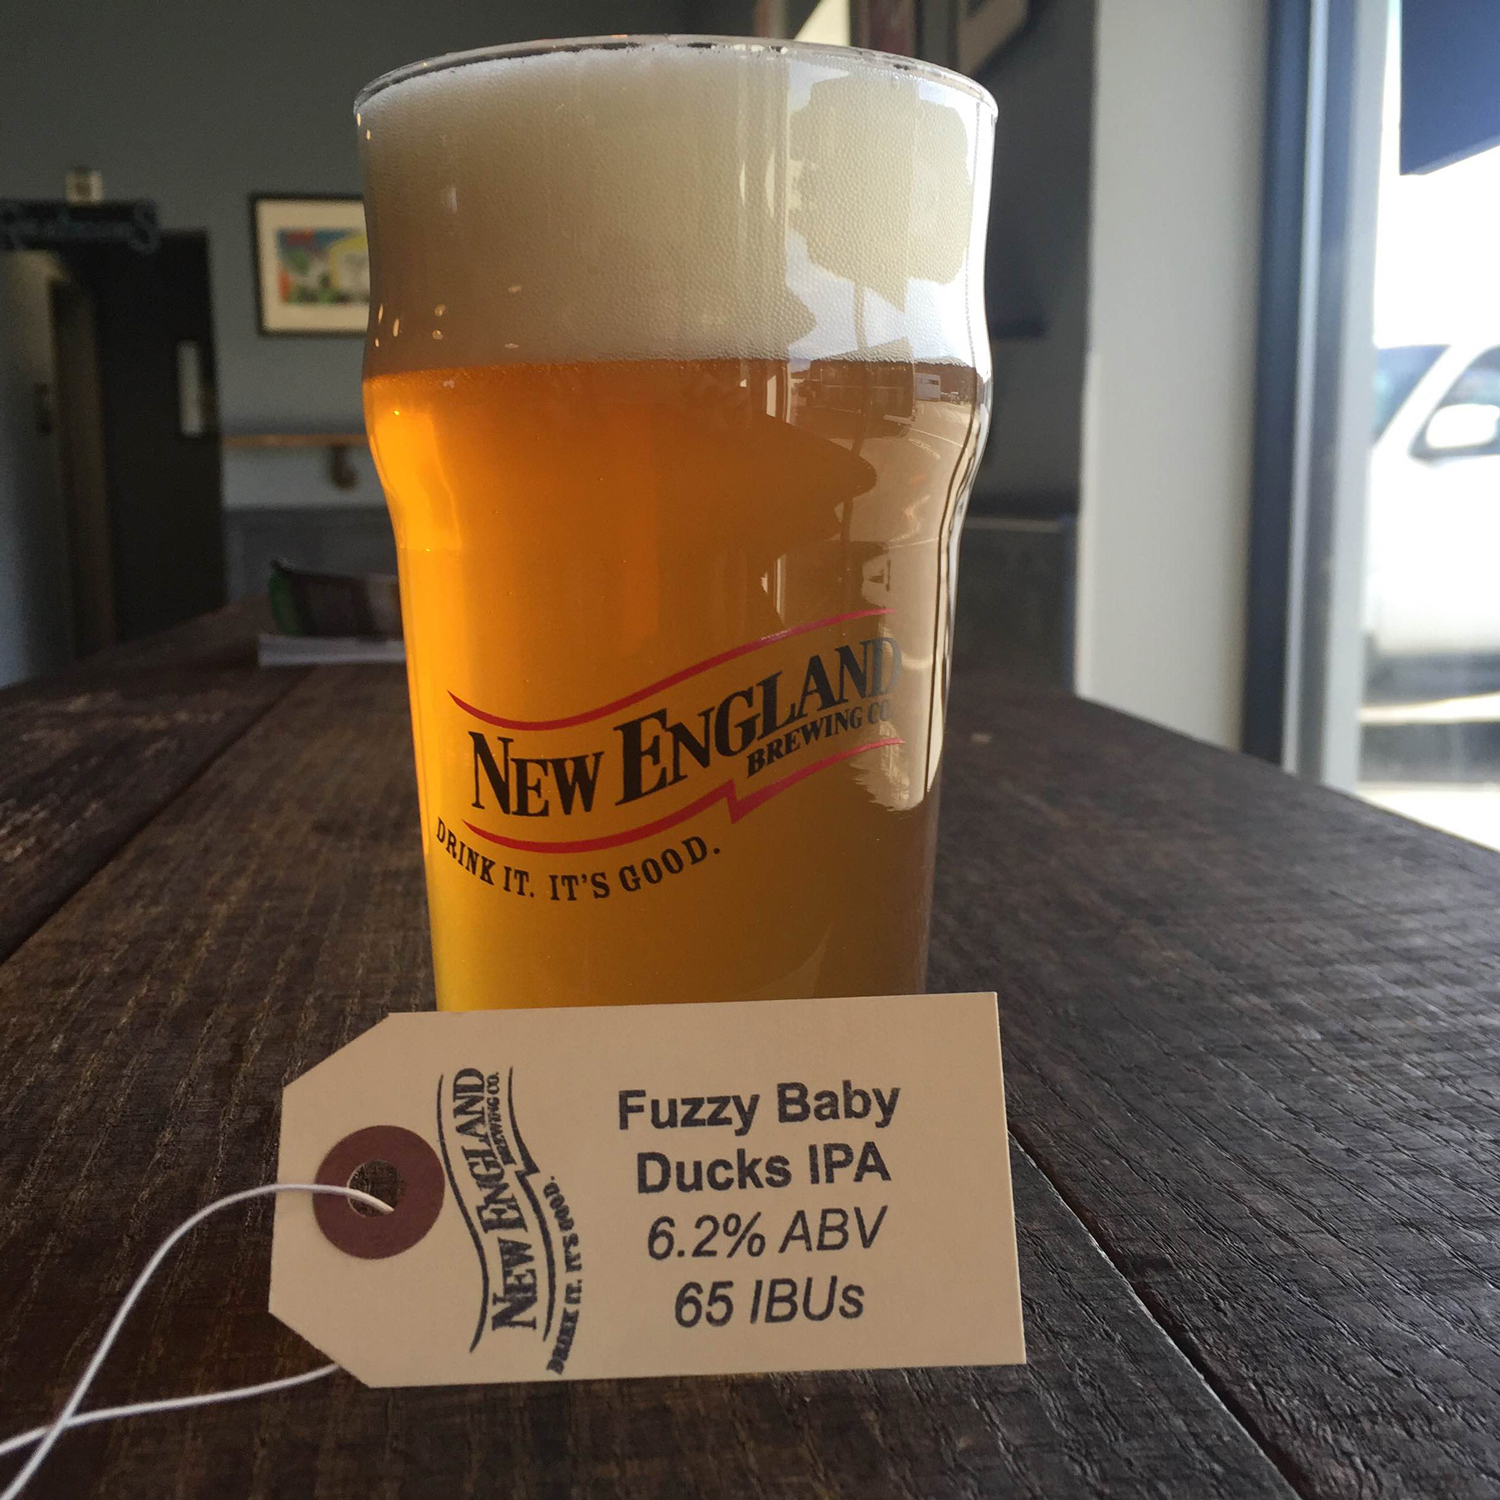 Connecticut: New England Fuzzy Baby Ducks IPA